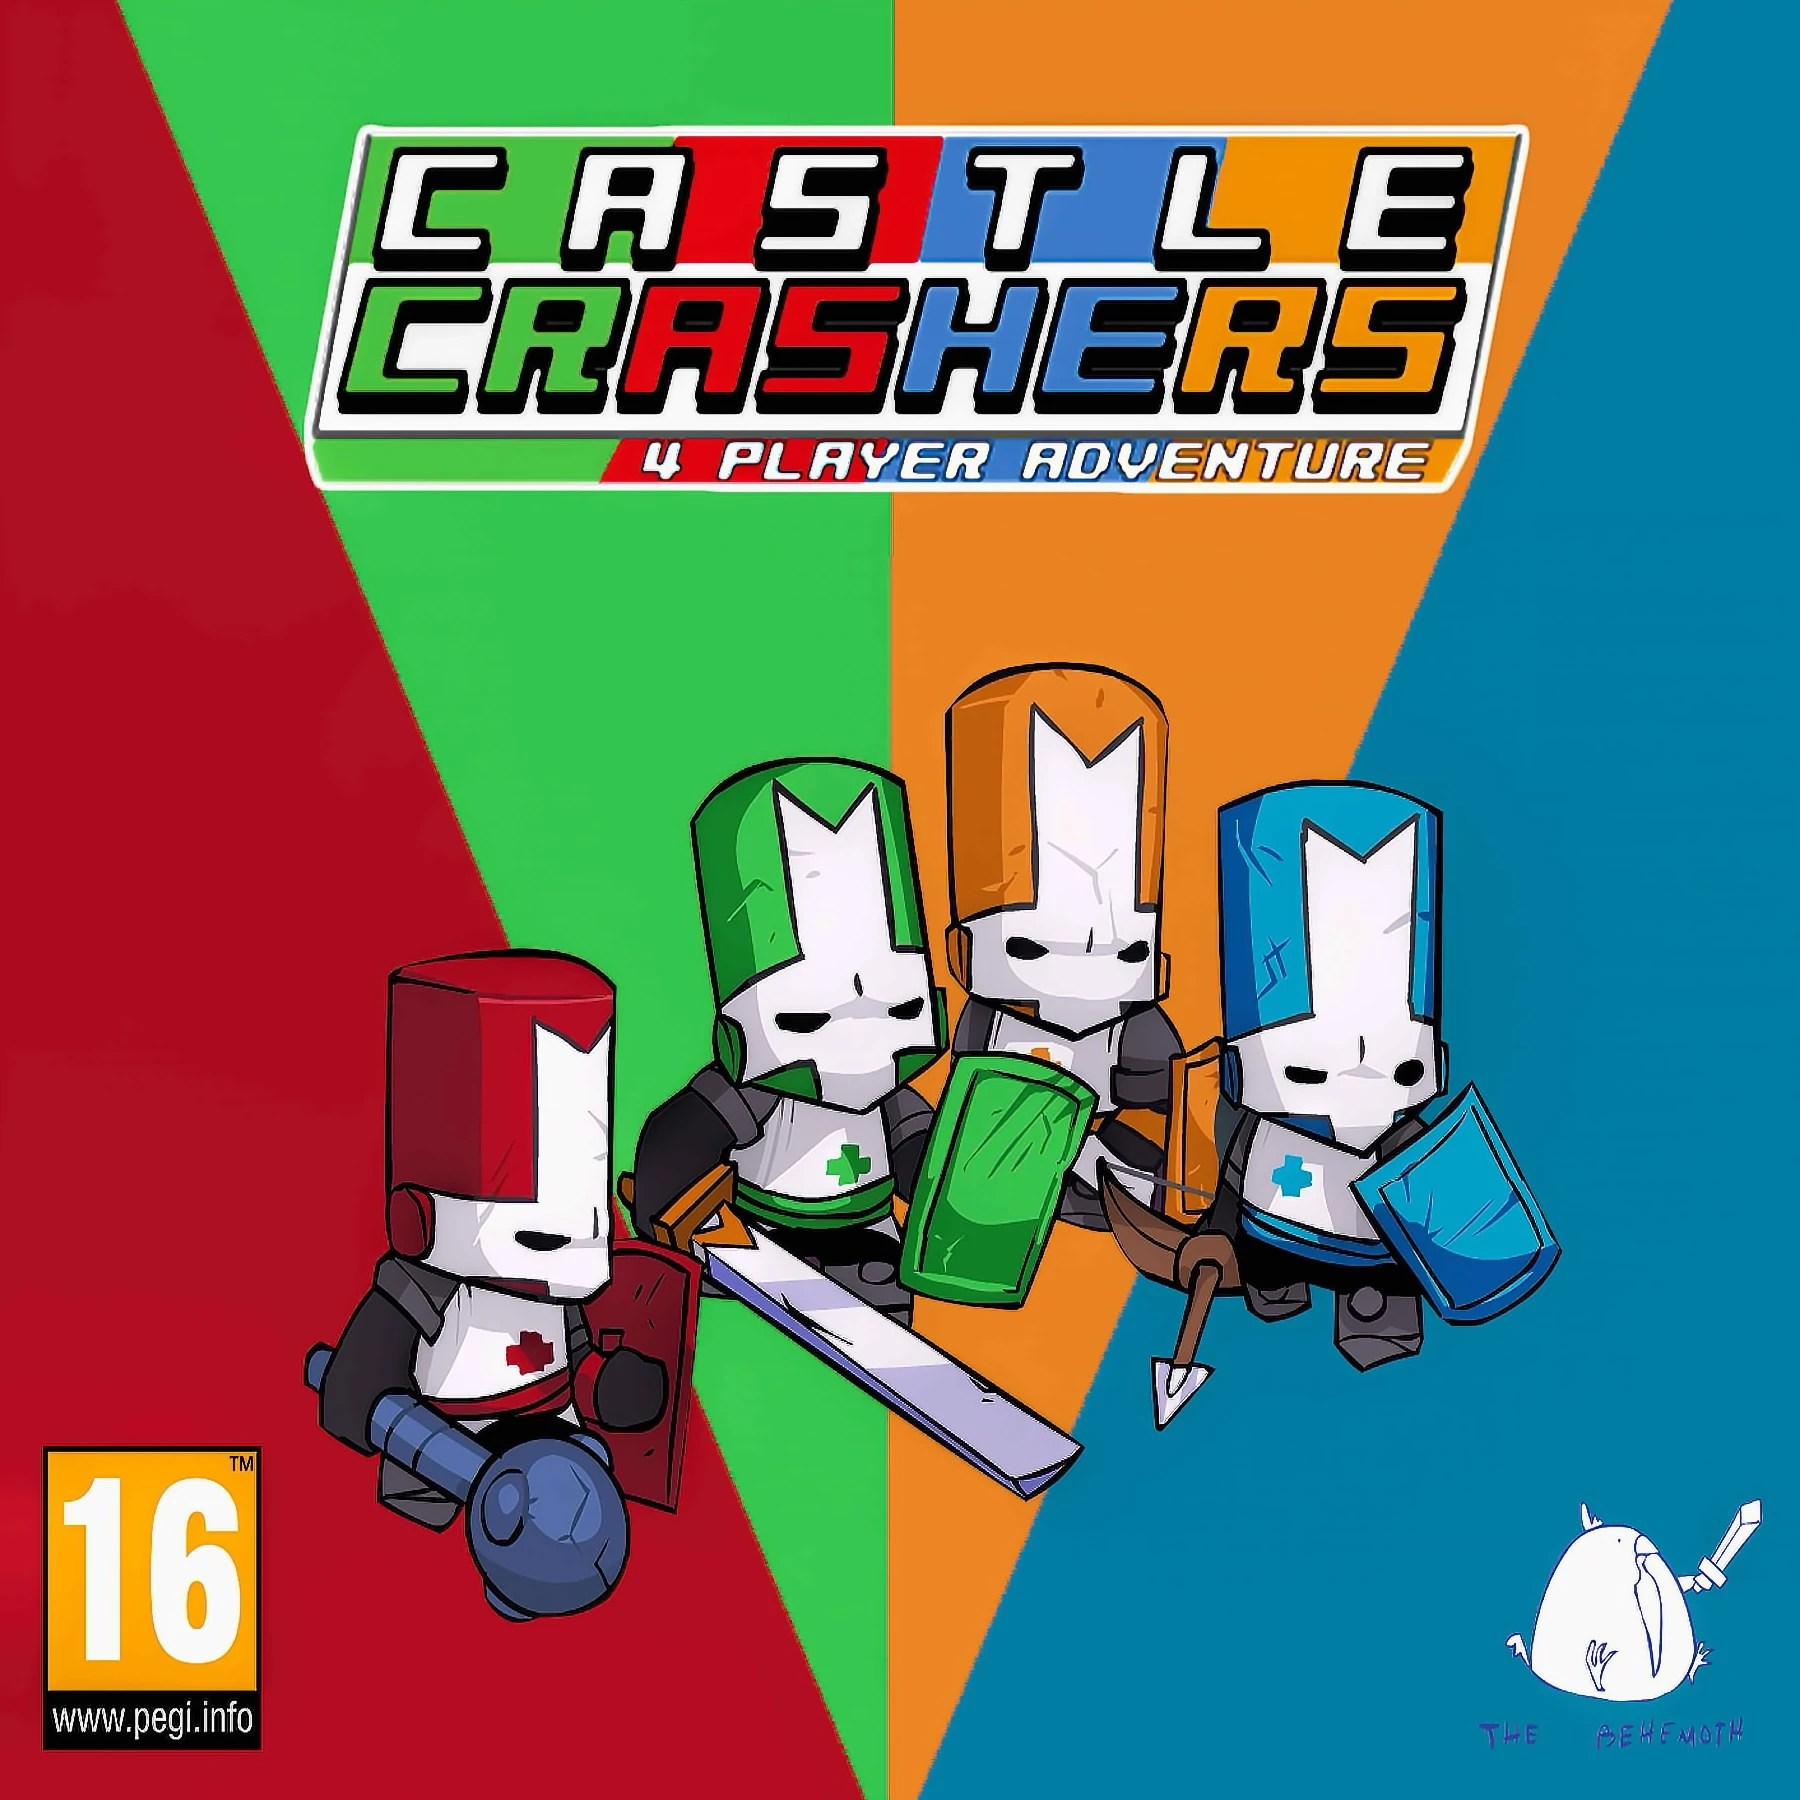 Hotline Miami Car Wallpaper Castle Crashers Game Grumps Wiki